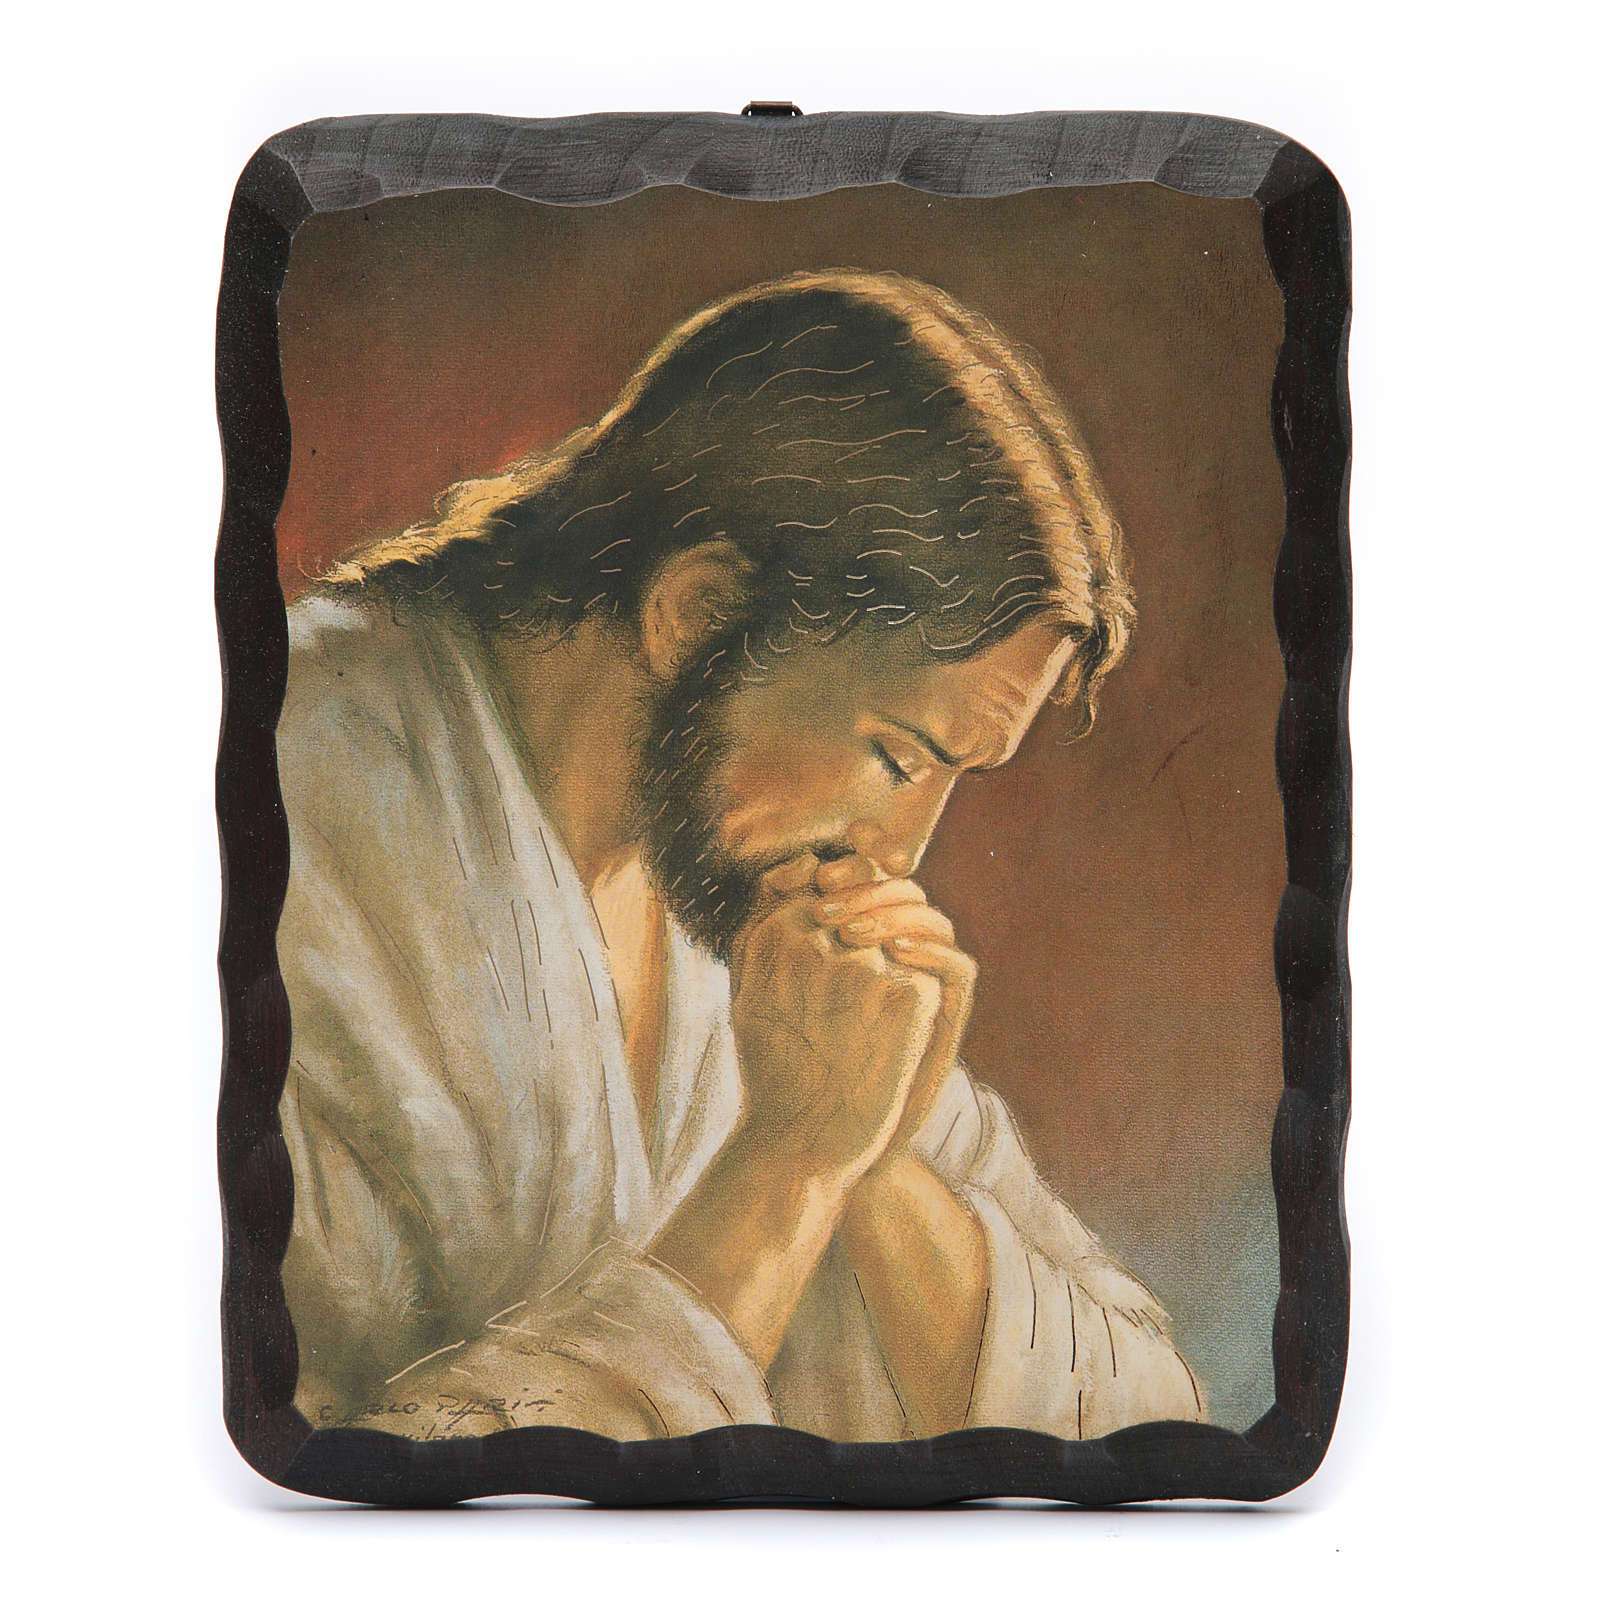 Jesus lithography in solid wood painting 4